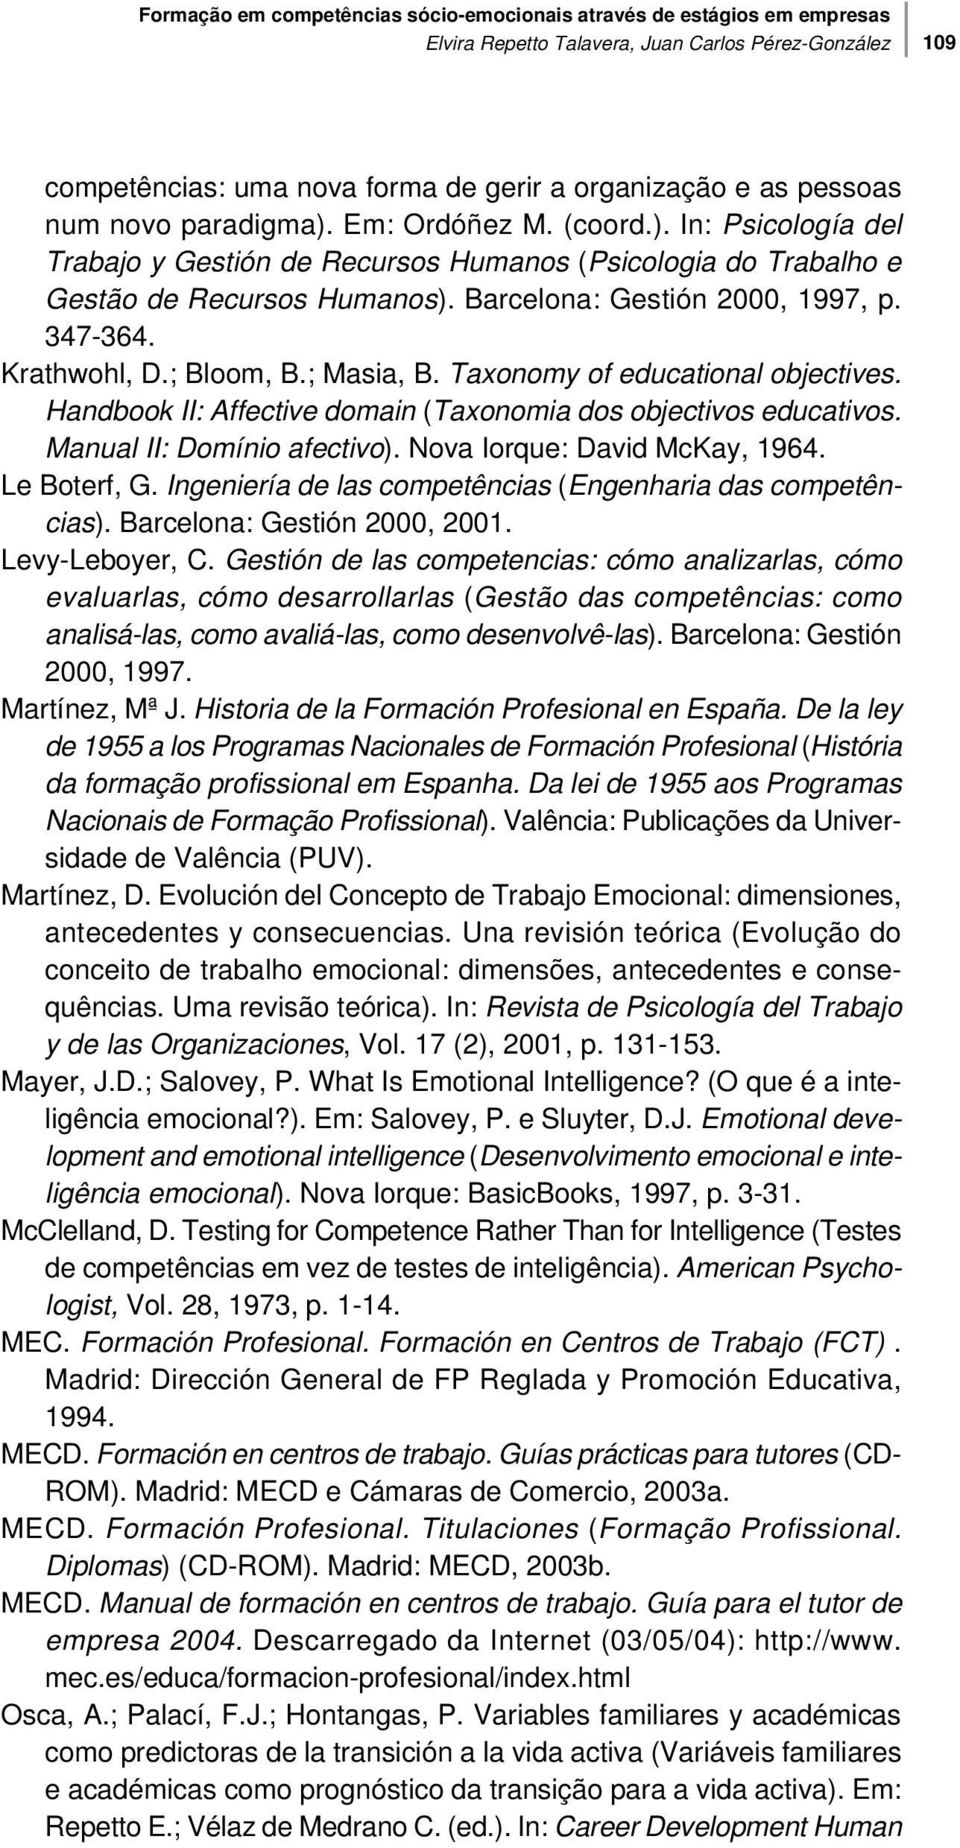 Krathwohl, D.; Bloom, B.; Masia, B. Taxonomy of educational objectives. Handbook II: Affective domain (Taxonomia dos objectivos educativos. Manual II: Domínio afectivo).